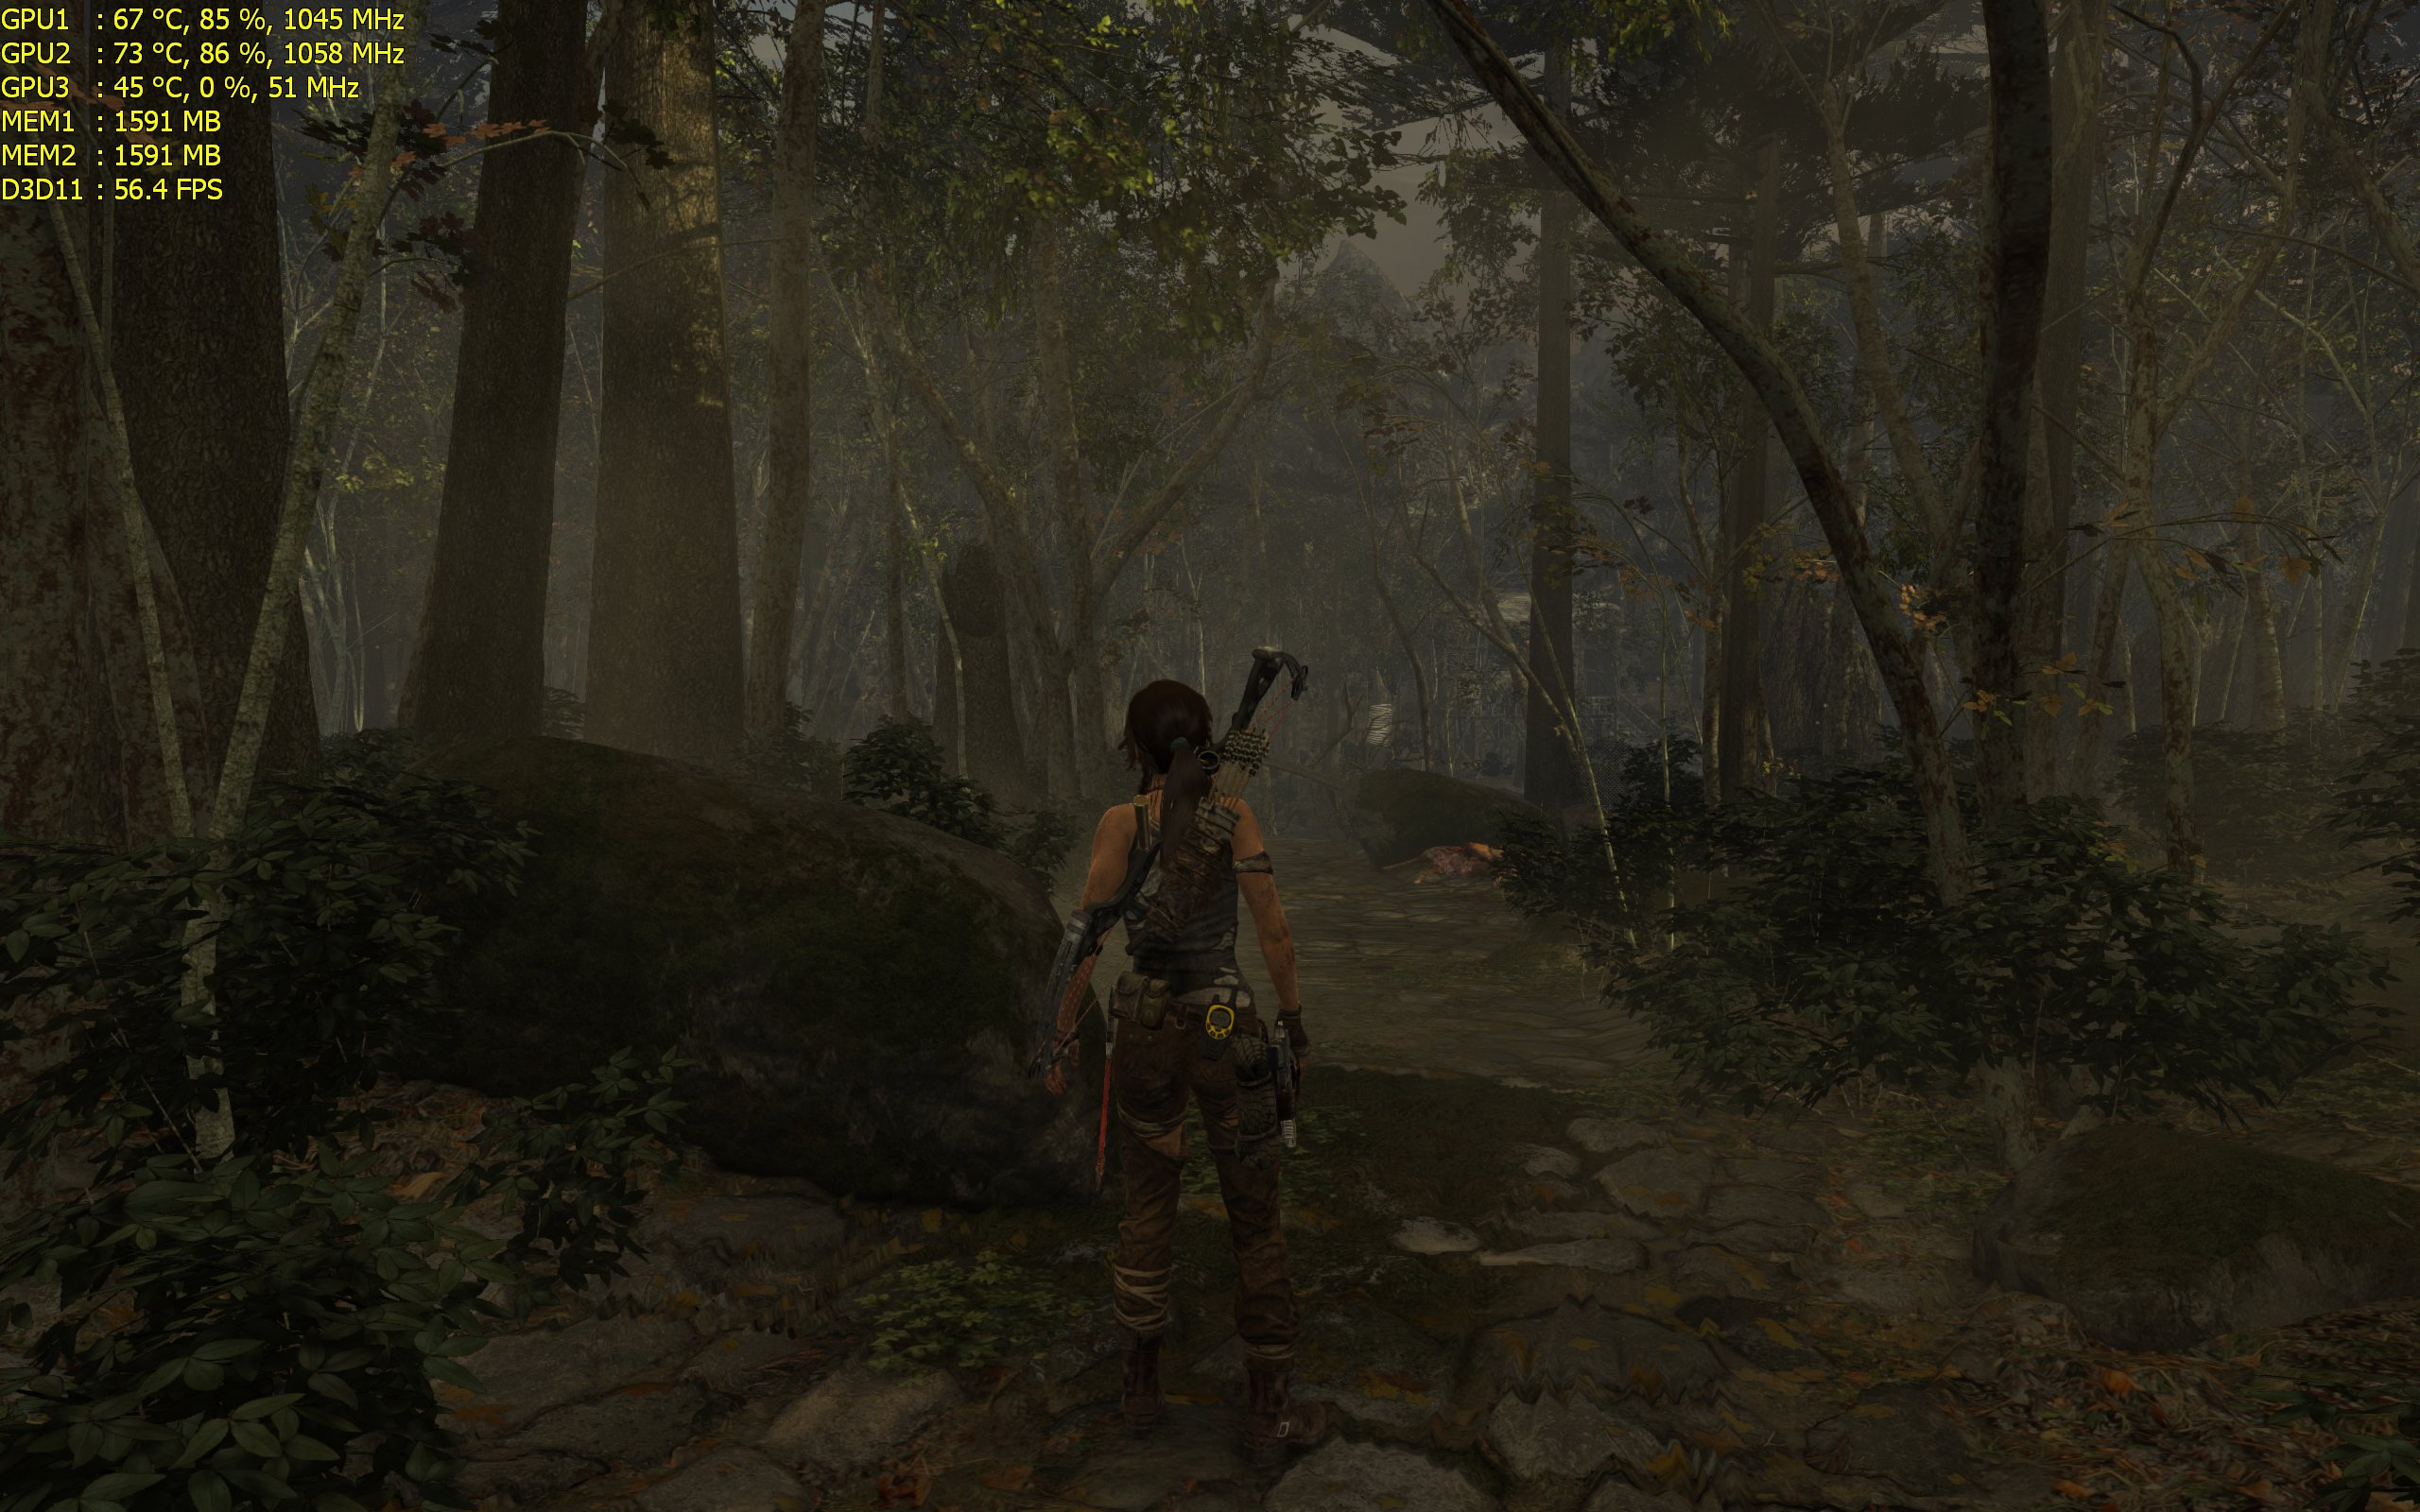 tomb raider 2013 nvidia patch